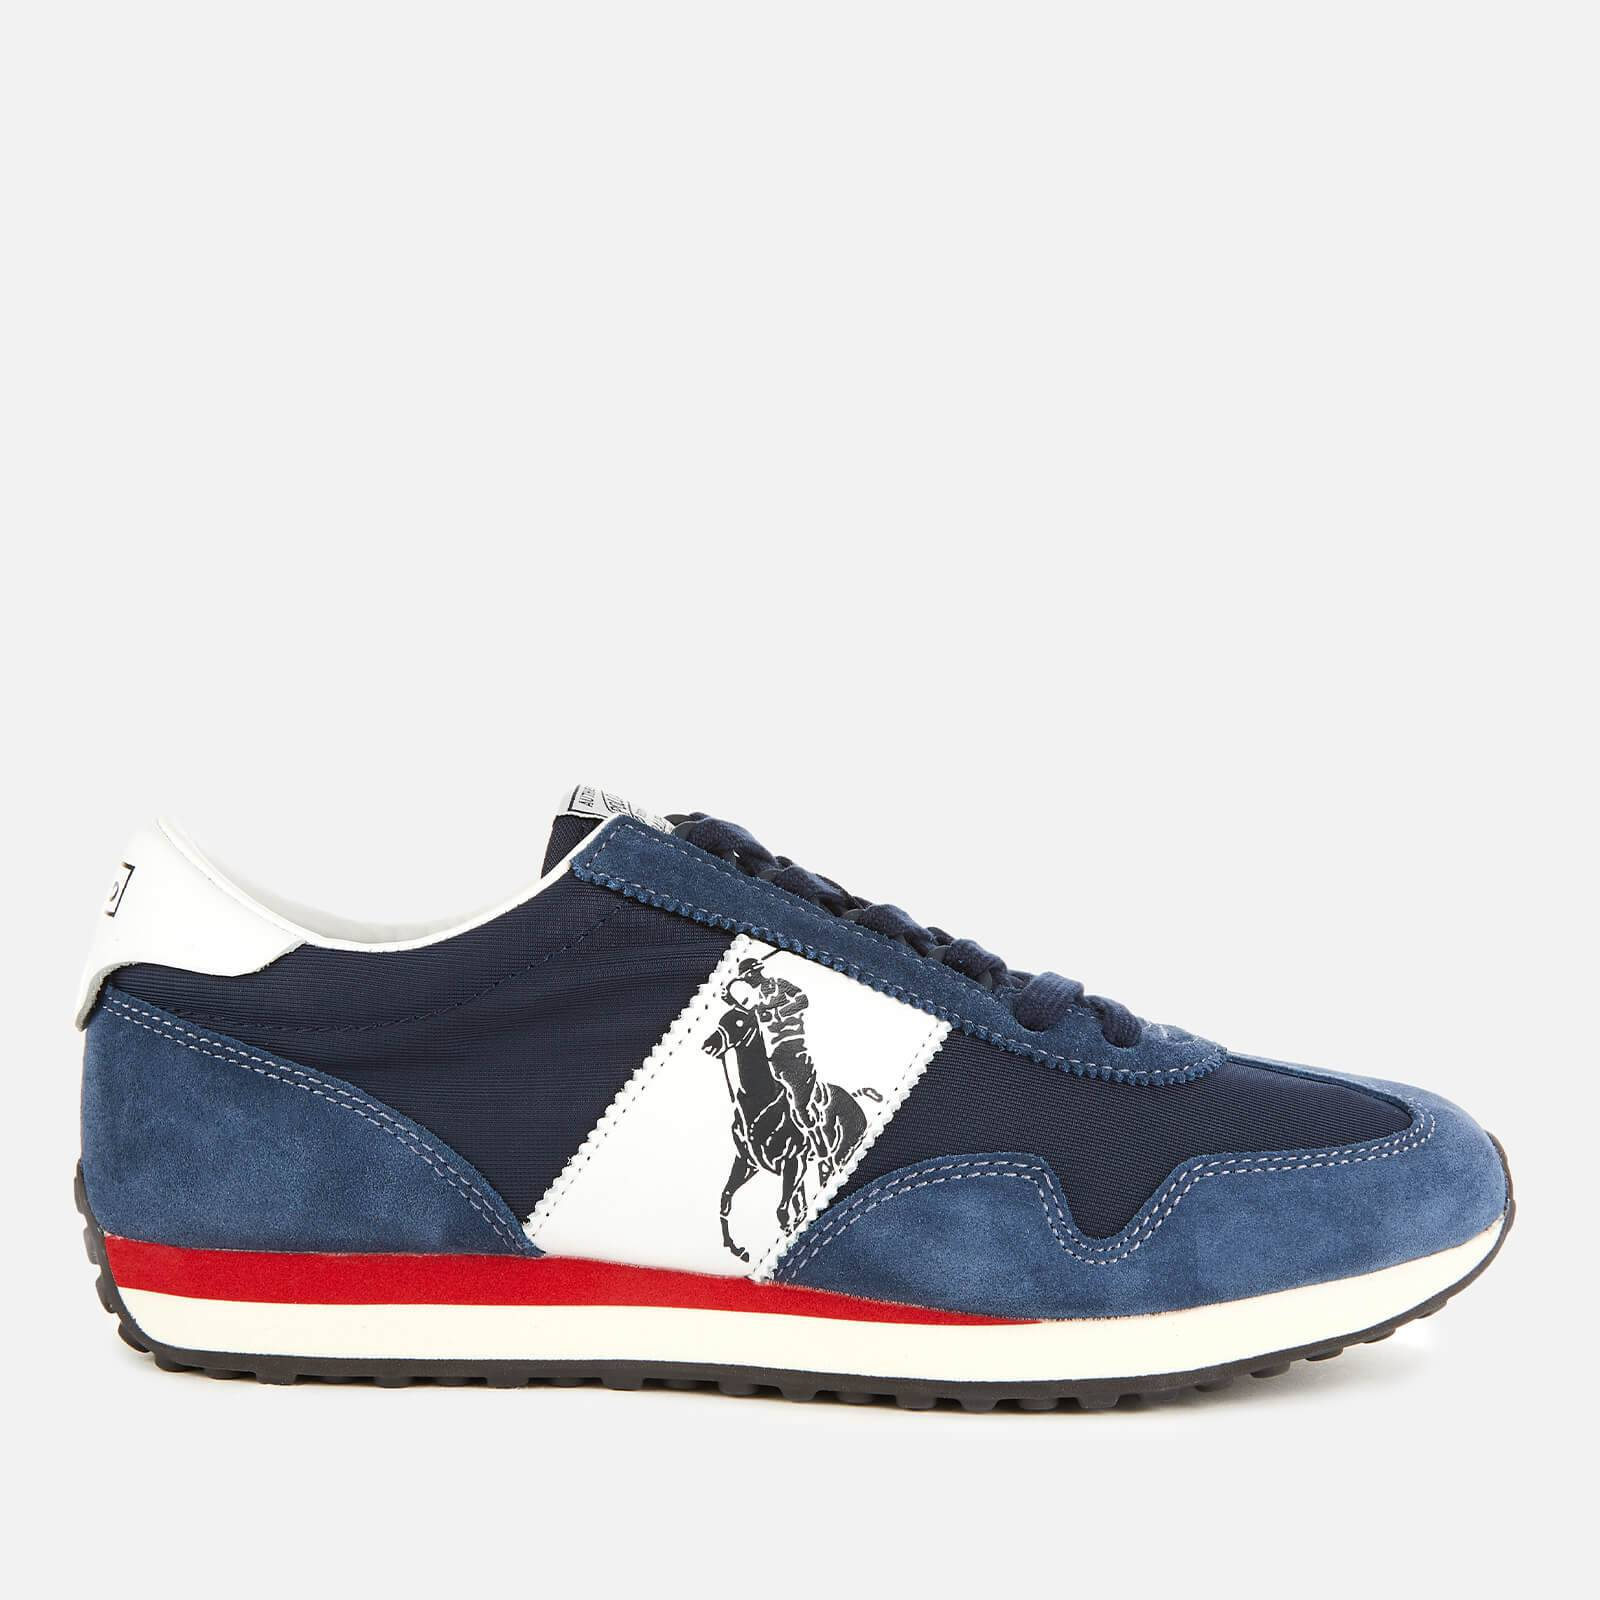 Ralph Lauren Polo Ralph Lauren Men's Train 90 PP Runner Style Trainers - Newport Navy/White - UK 9 - Blue